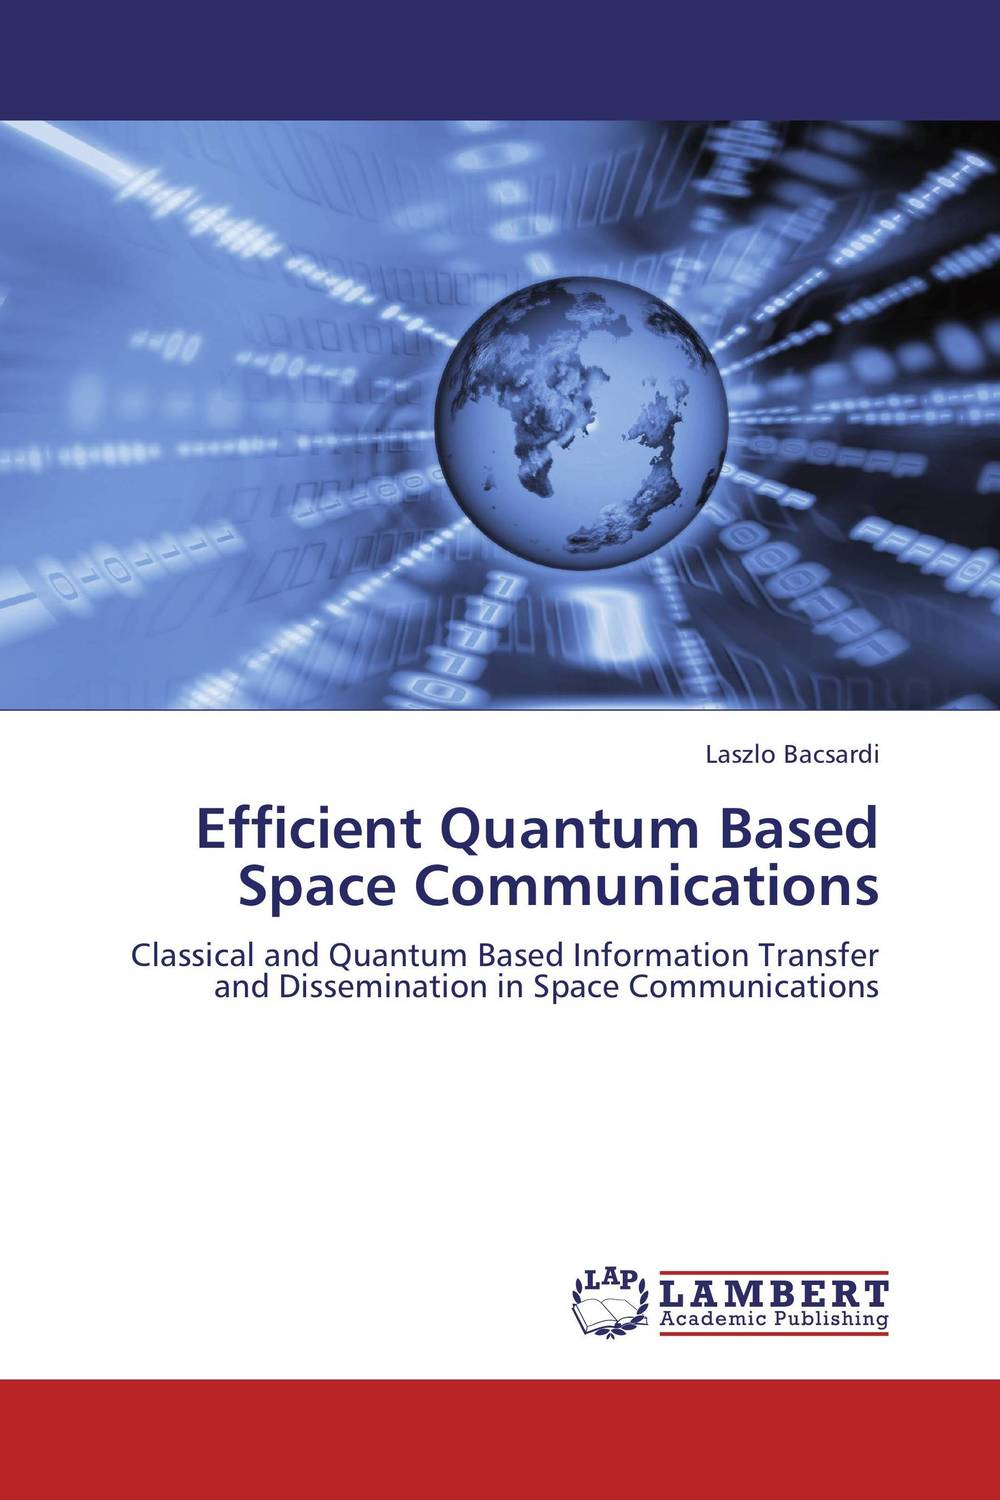 Efficient Quantum Based Space Communications java language bindings for space based computing